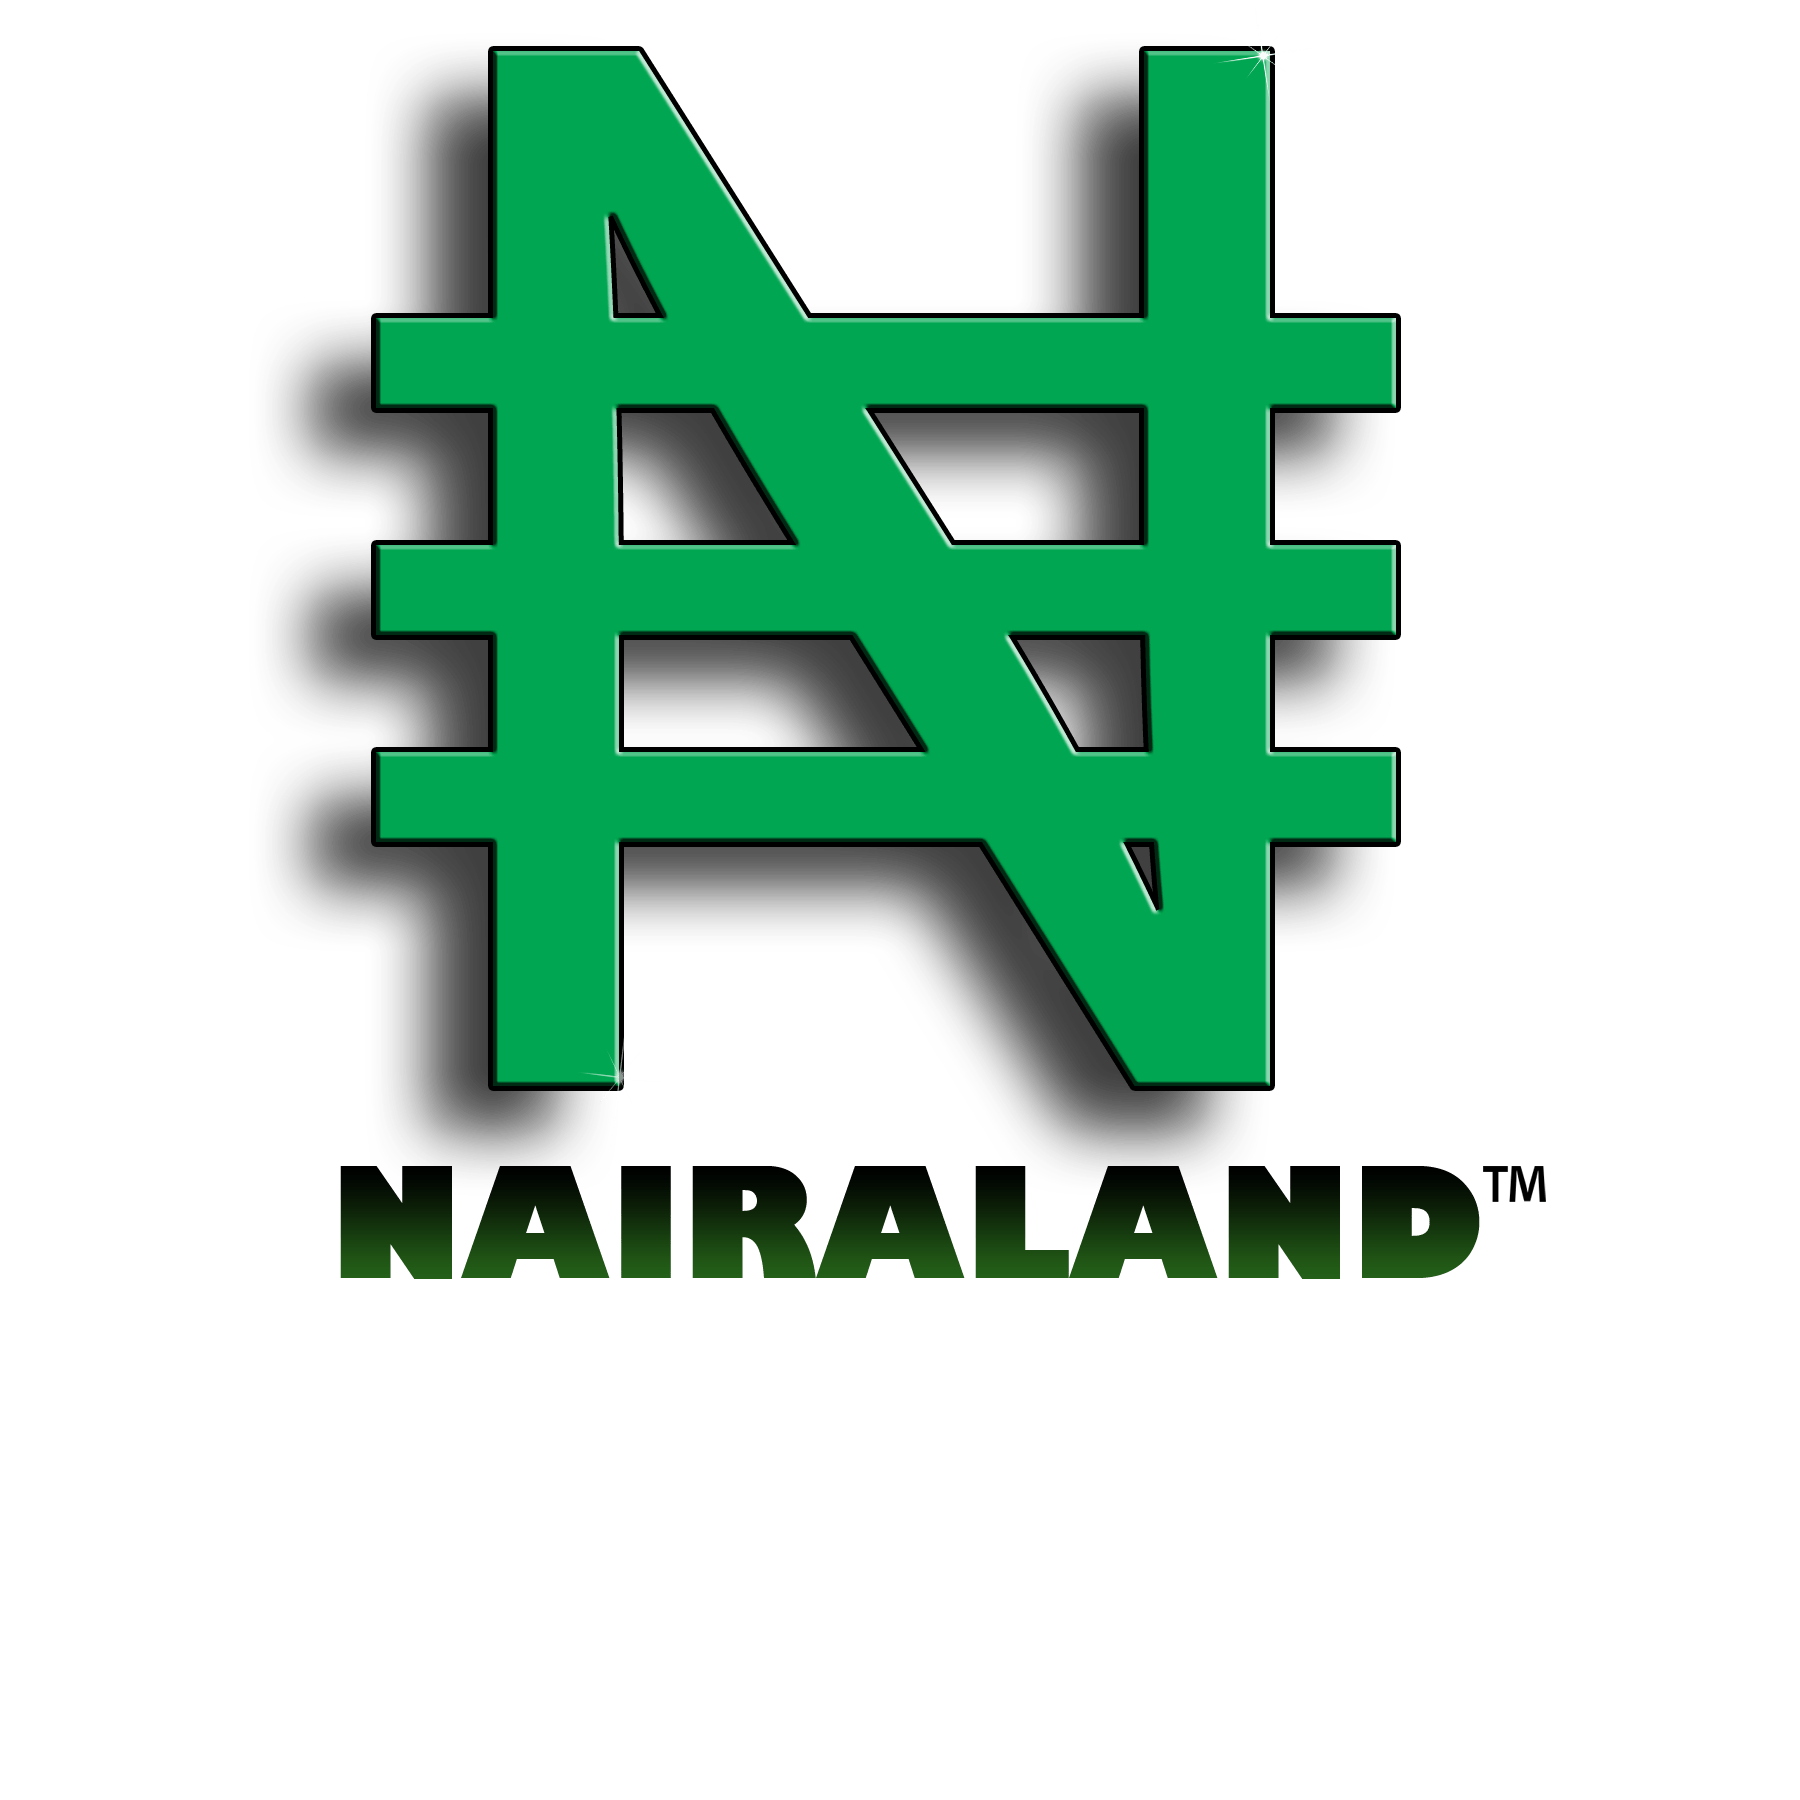 nairaland, 5th most visited website in Nigeria